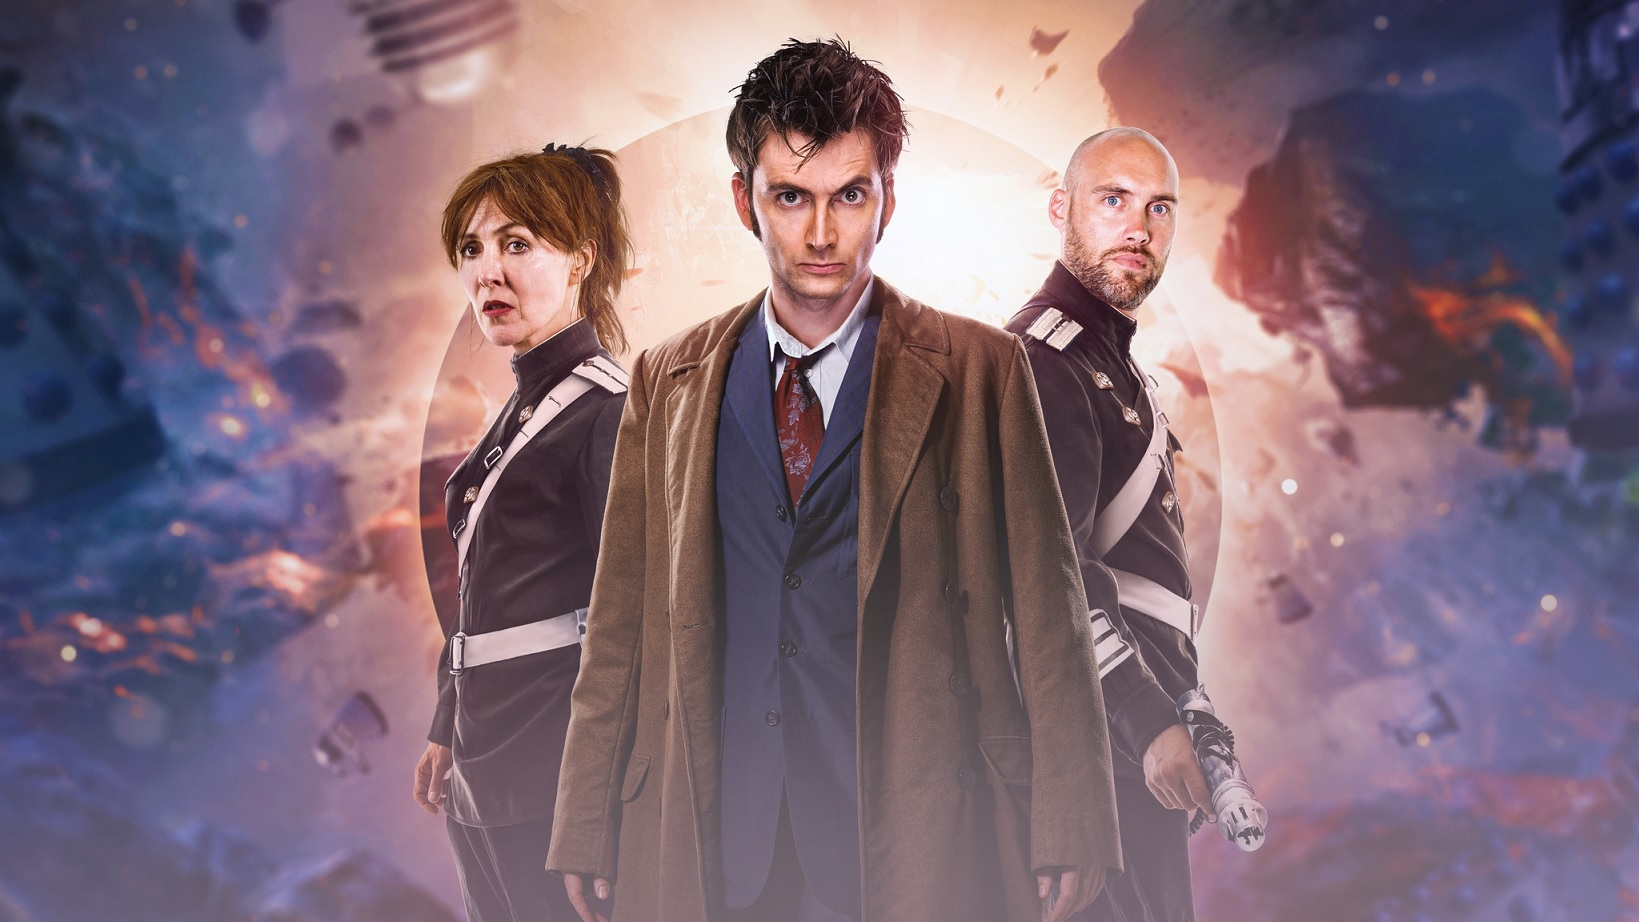 David Tennant's Tenth Doctor Returns to Star in Dalek Universe, a New Series for Big Finish